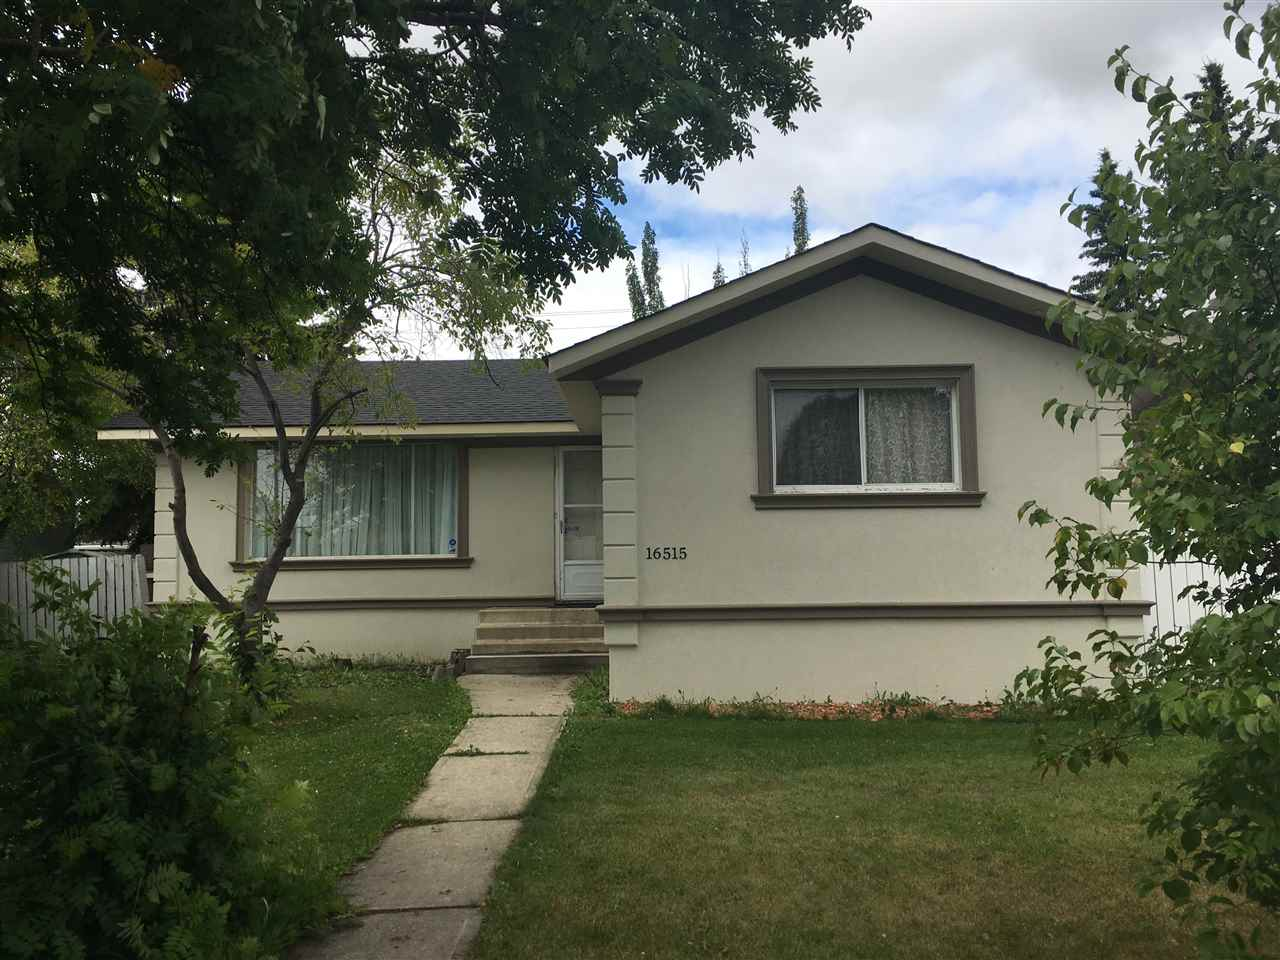 Fully renovated bungalow in the quiet community of Elmwood. Close to schools , West Edmonton Mall,  Hospital,and bus routes. The main floor offers open concept with hardwood and ceramic tile floors, 3 large bedrooms, spacious living room, functional kitchen with stainless steel appliances. The basement is fully finished with a 4th bedroom, full bathroom and laminate floors.The exterior has acrylic stucco which gives this house a modern look and provides extra insulation. This house offers an exceptional value and must be seen